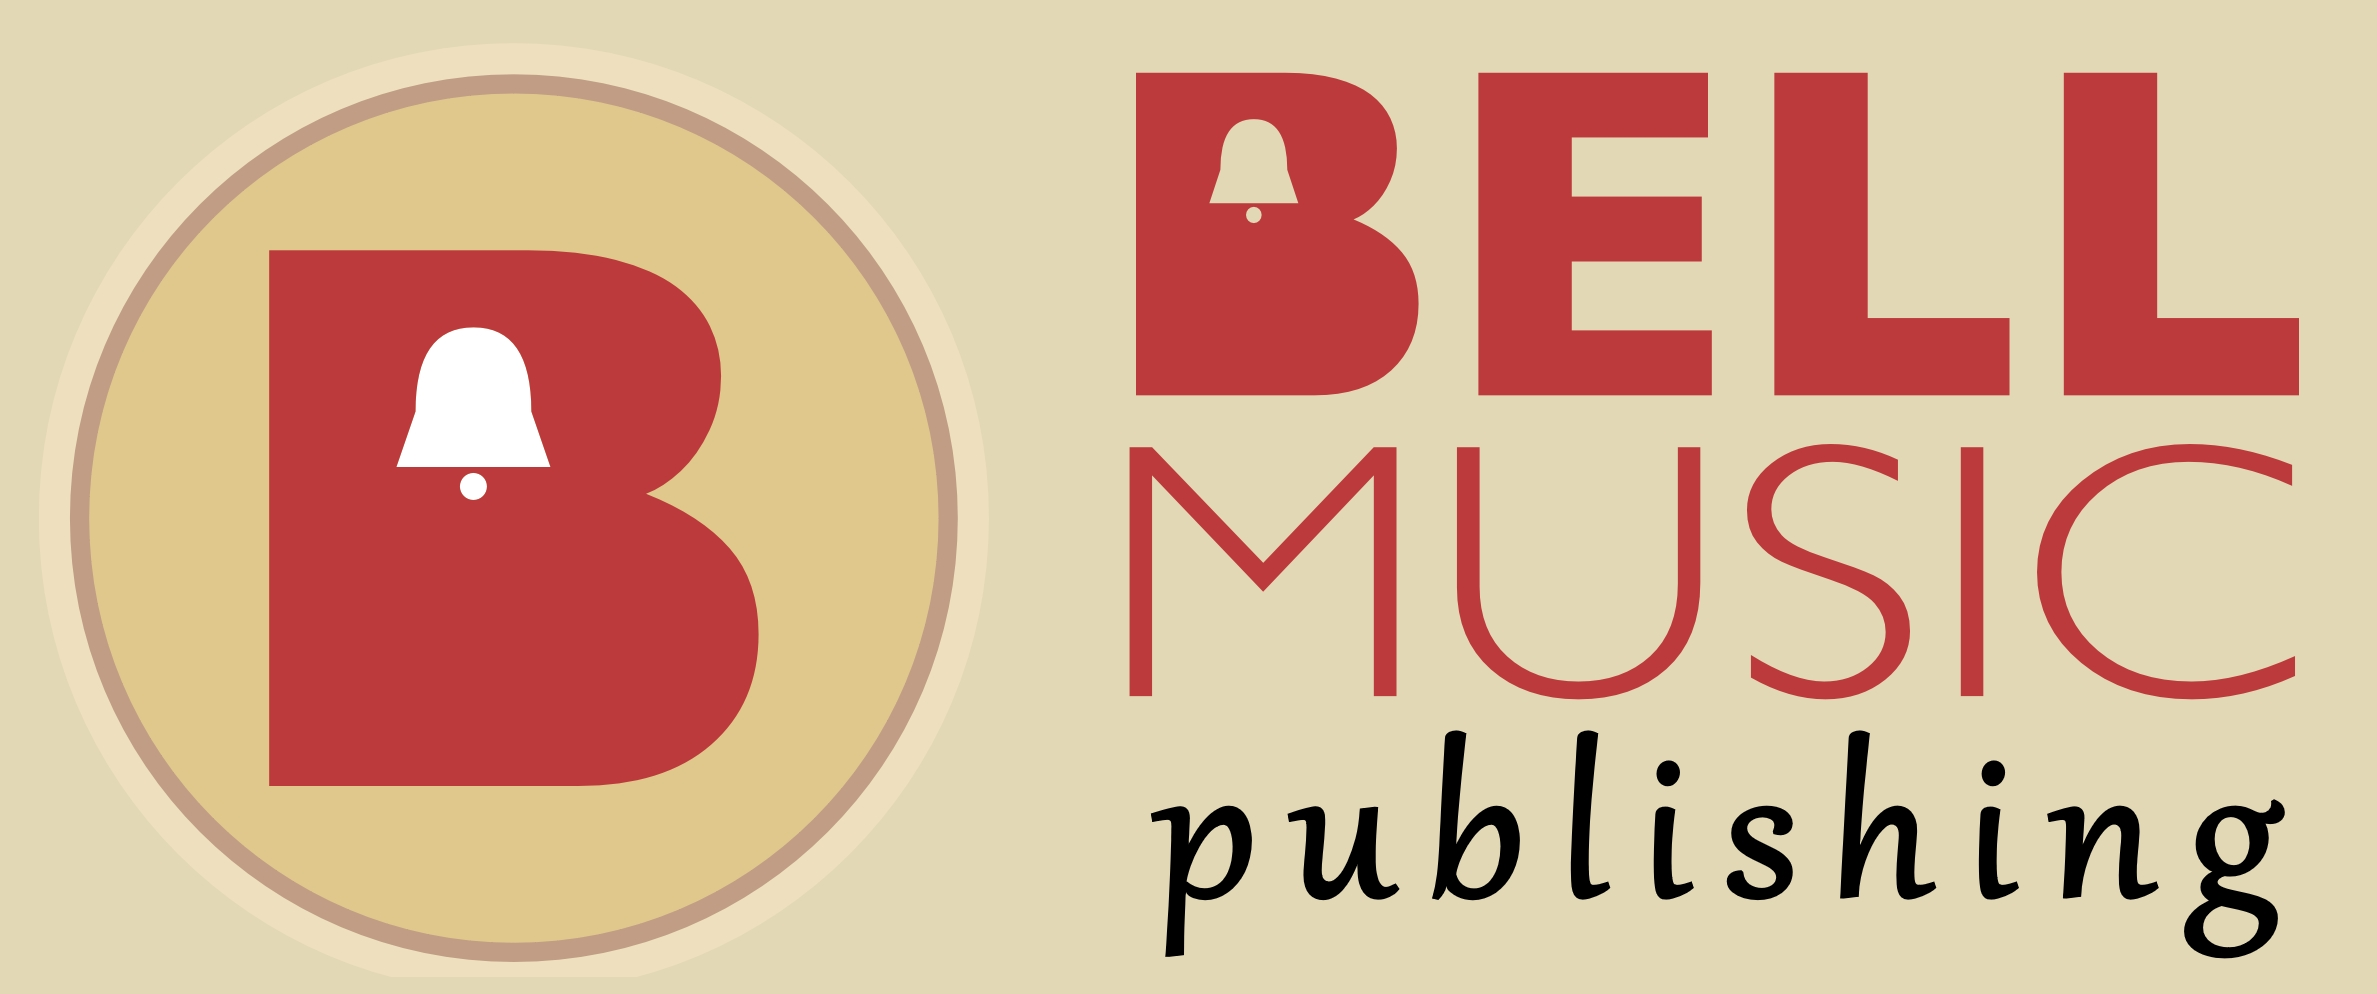 Bell Music Publishing